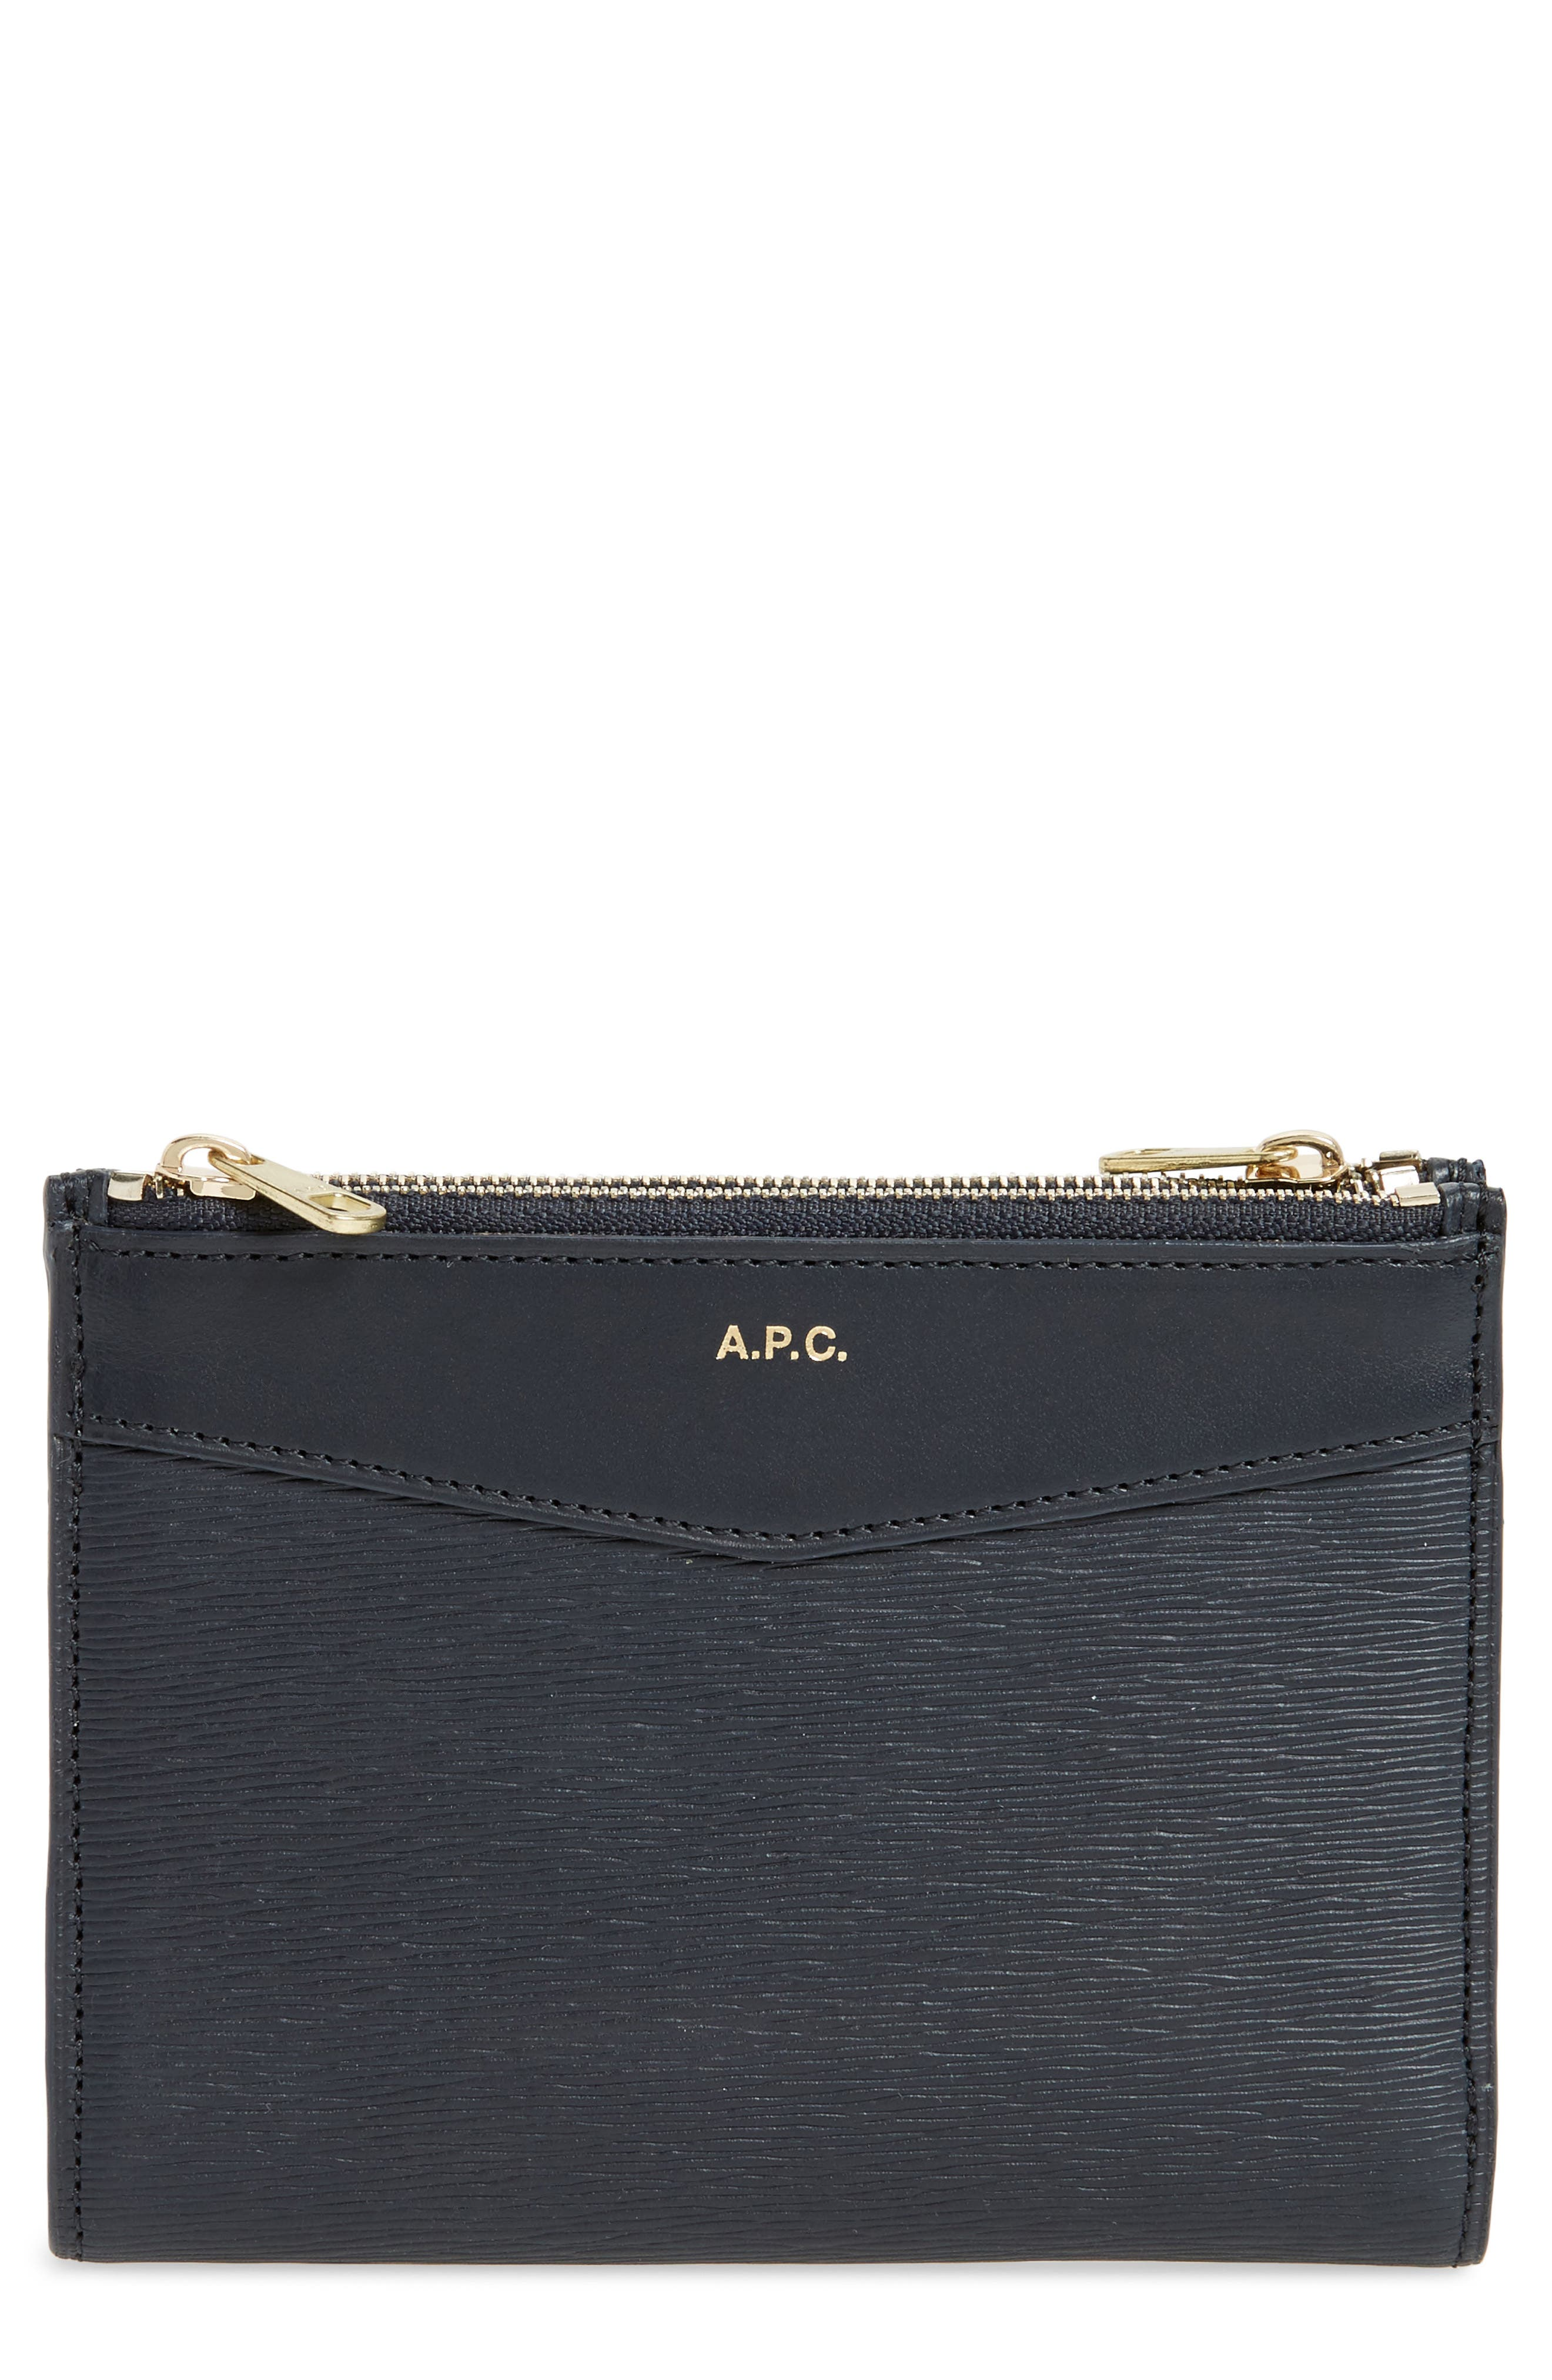 Main Image - A.P.C. Claudine Calfskin Leather Wallet